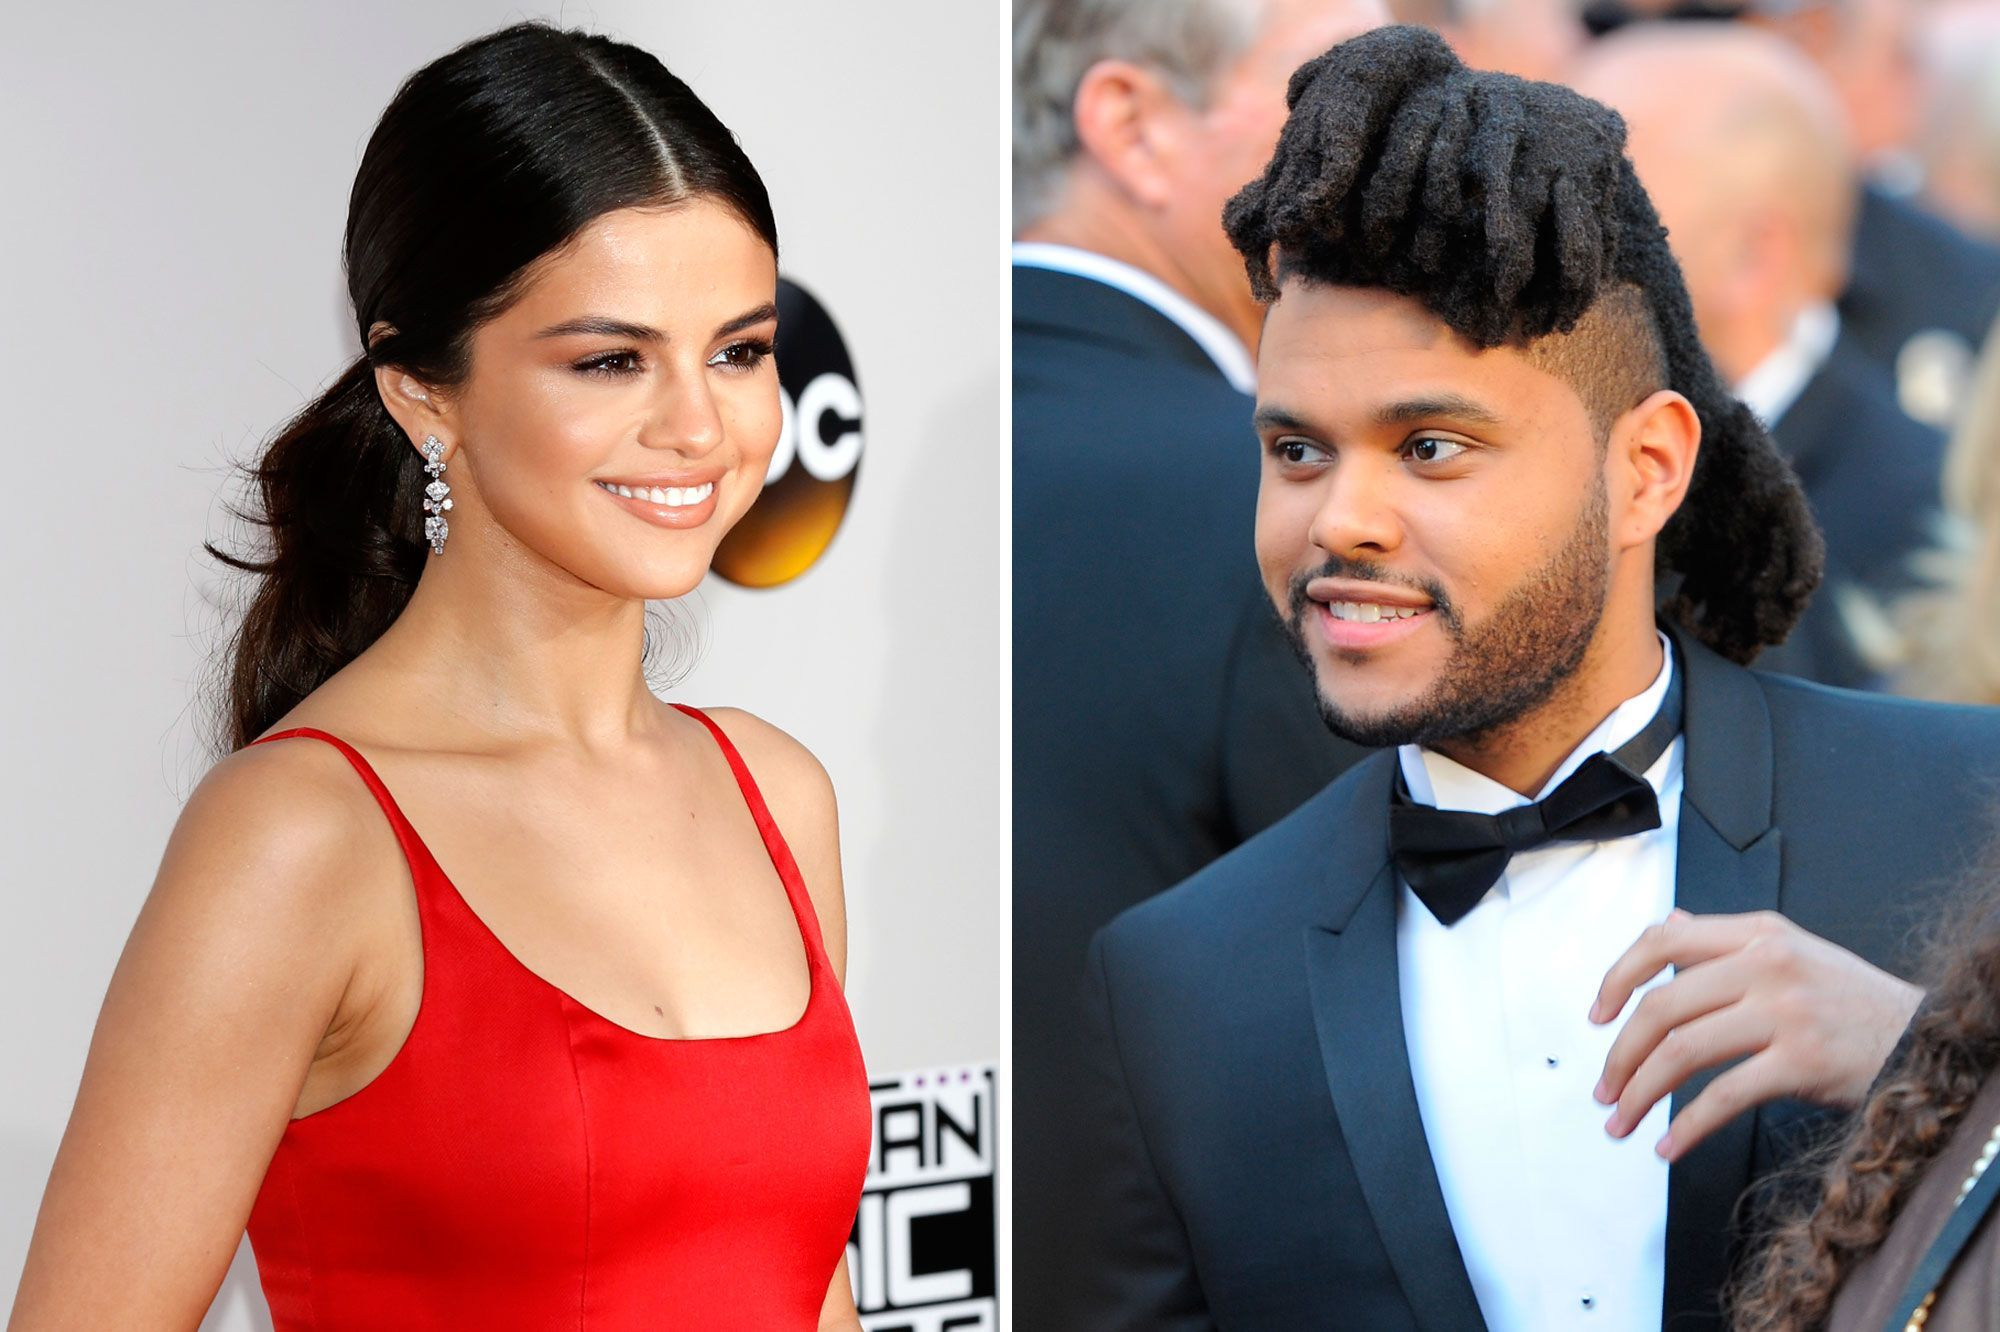 Selena-Gomez-et-The-Weeknd-prets-a-faire-le-grand-saut.jpg (2000×1332)